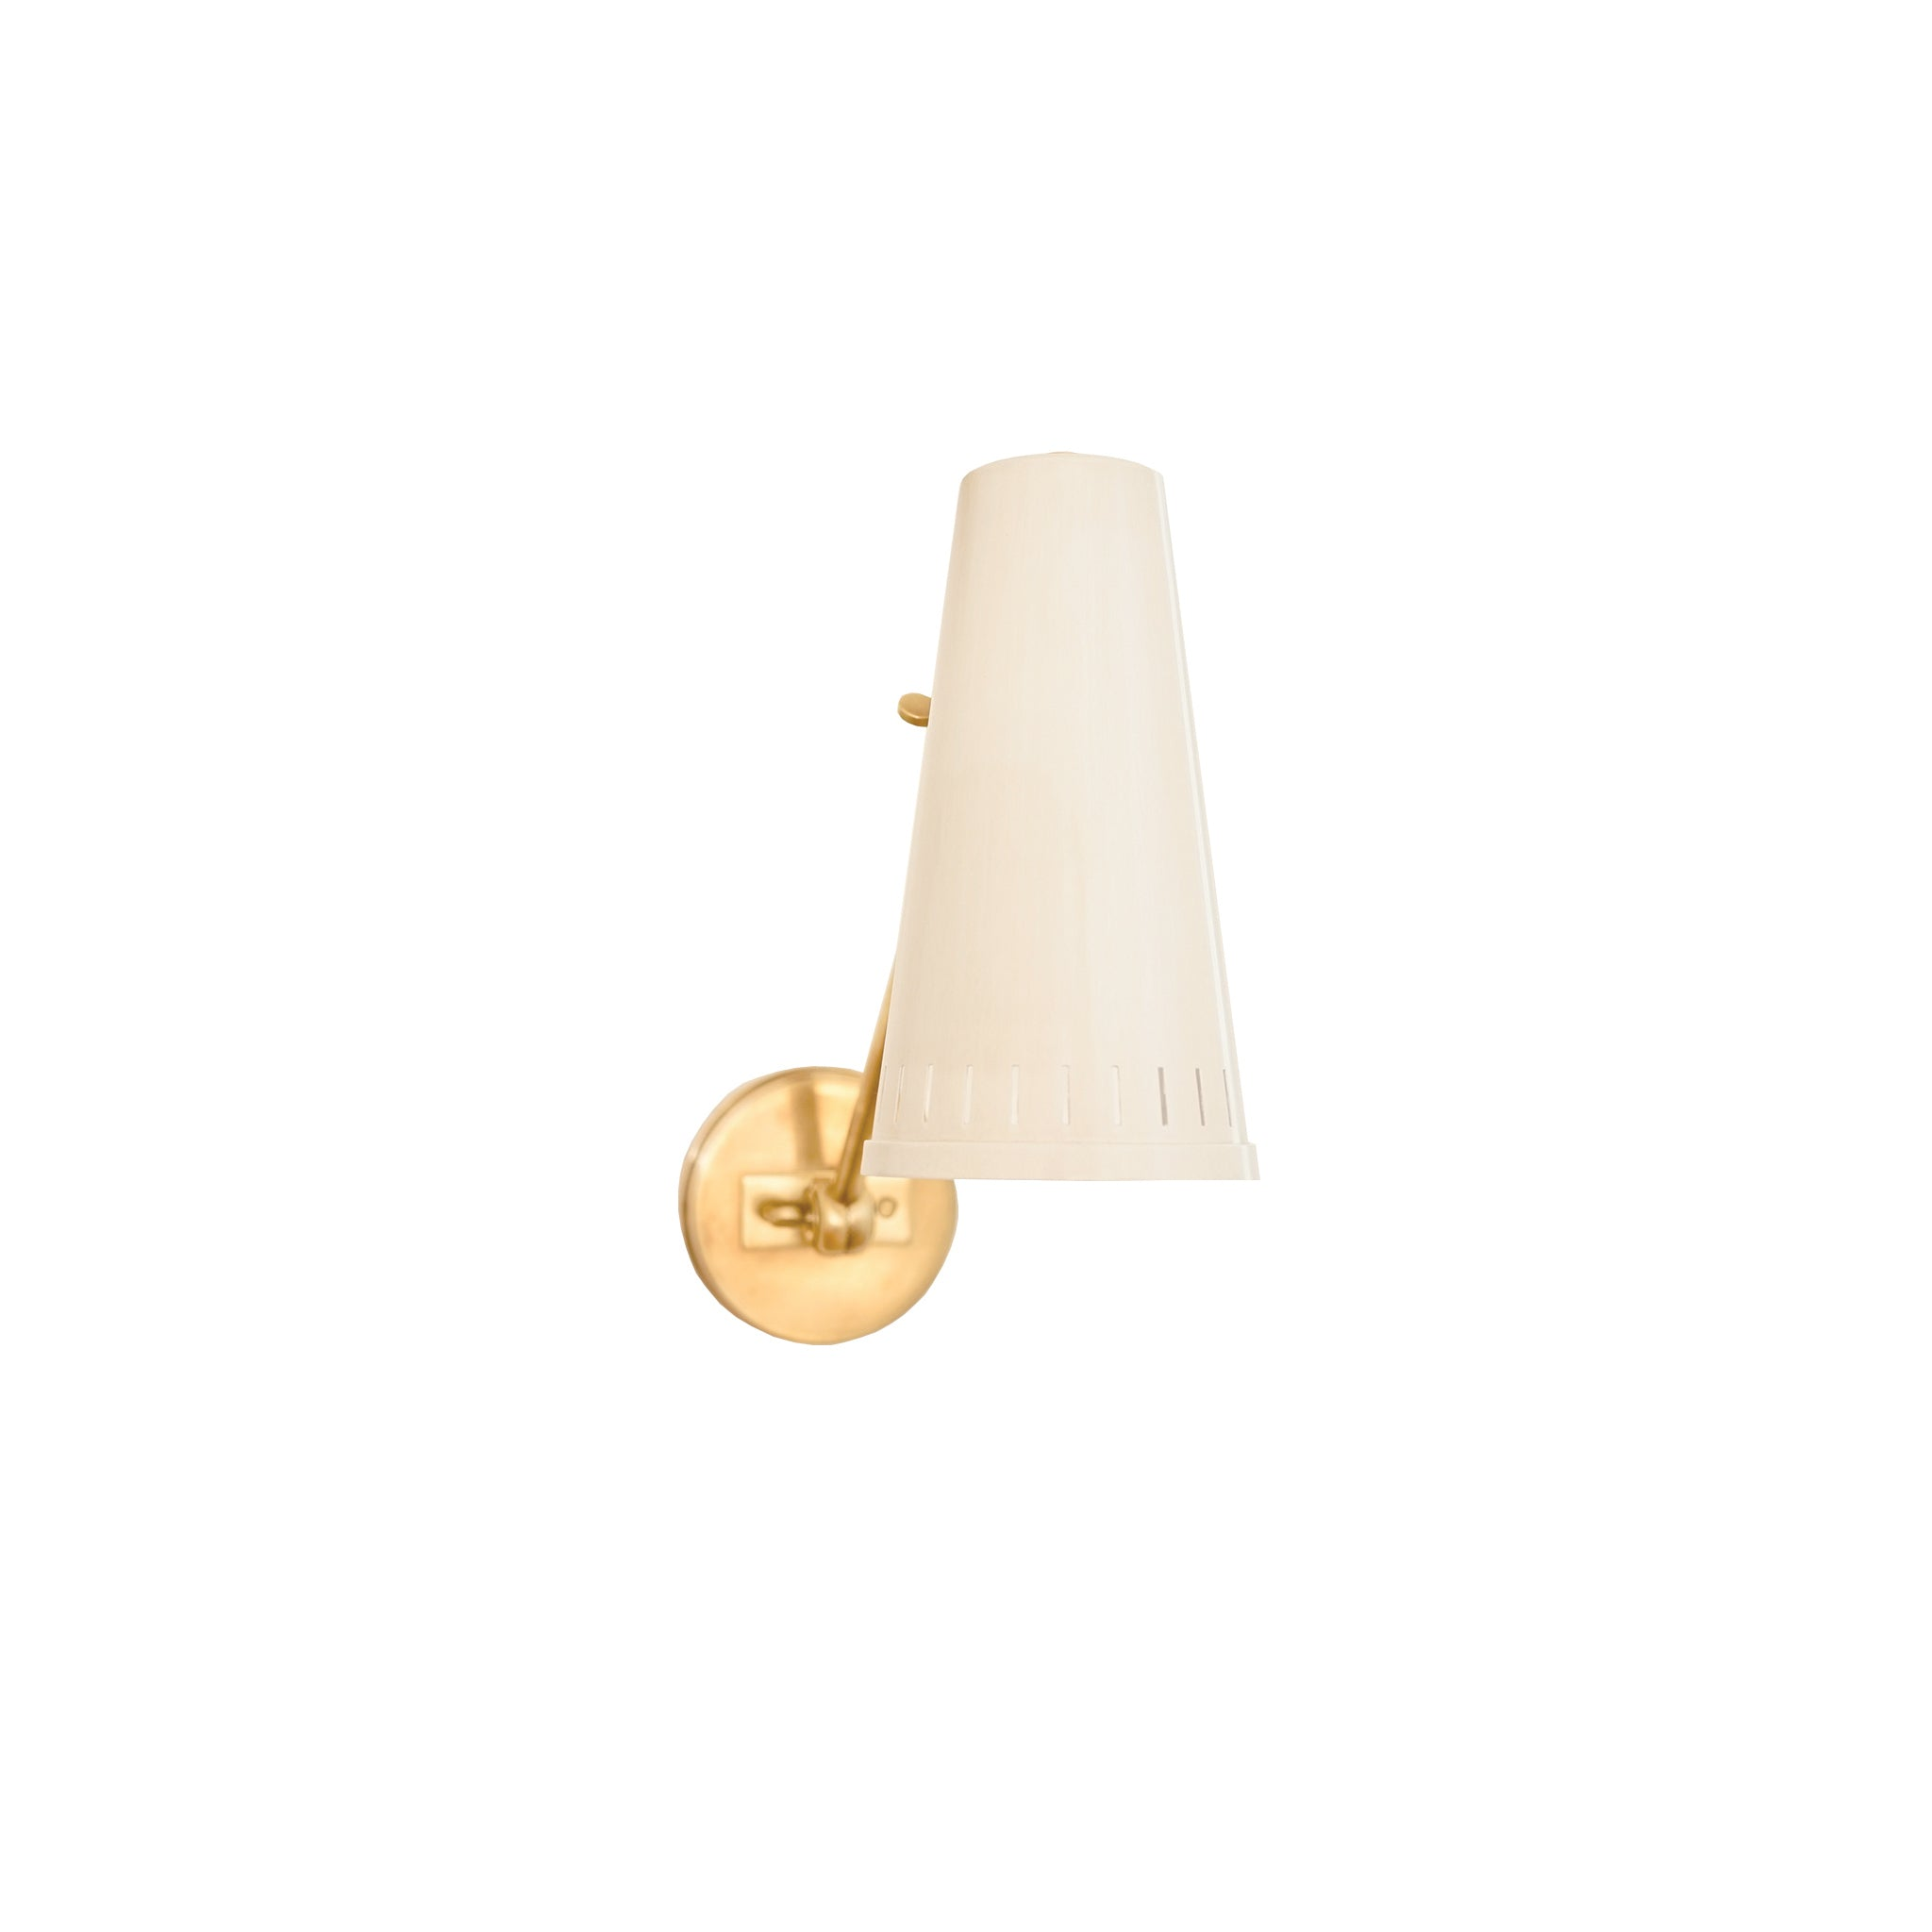 Antonio One Arm Wall Sconce